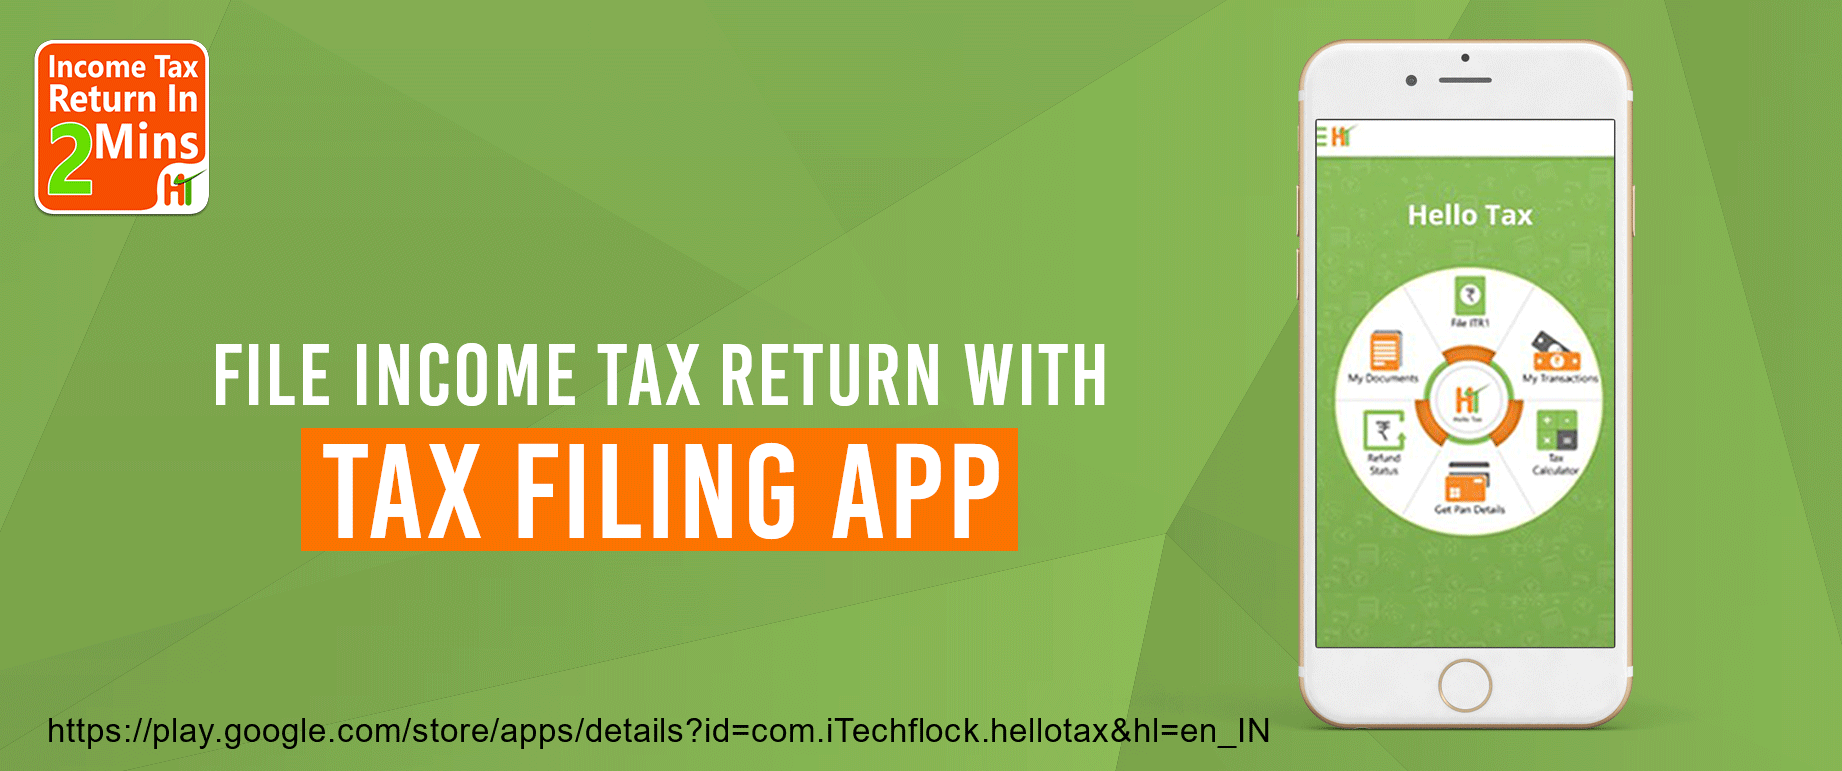 File Income Tax Return with Tax Filing App Any salaried employee can